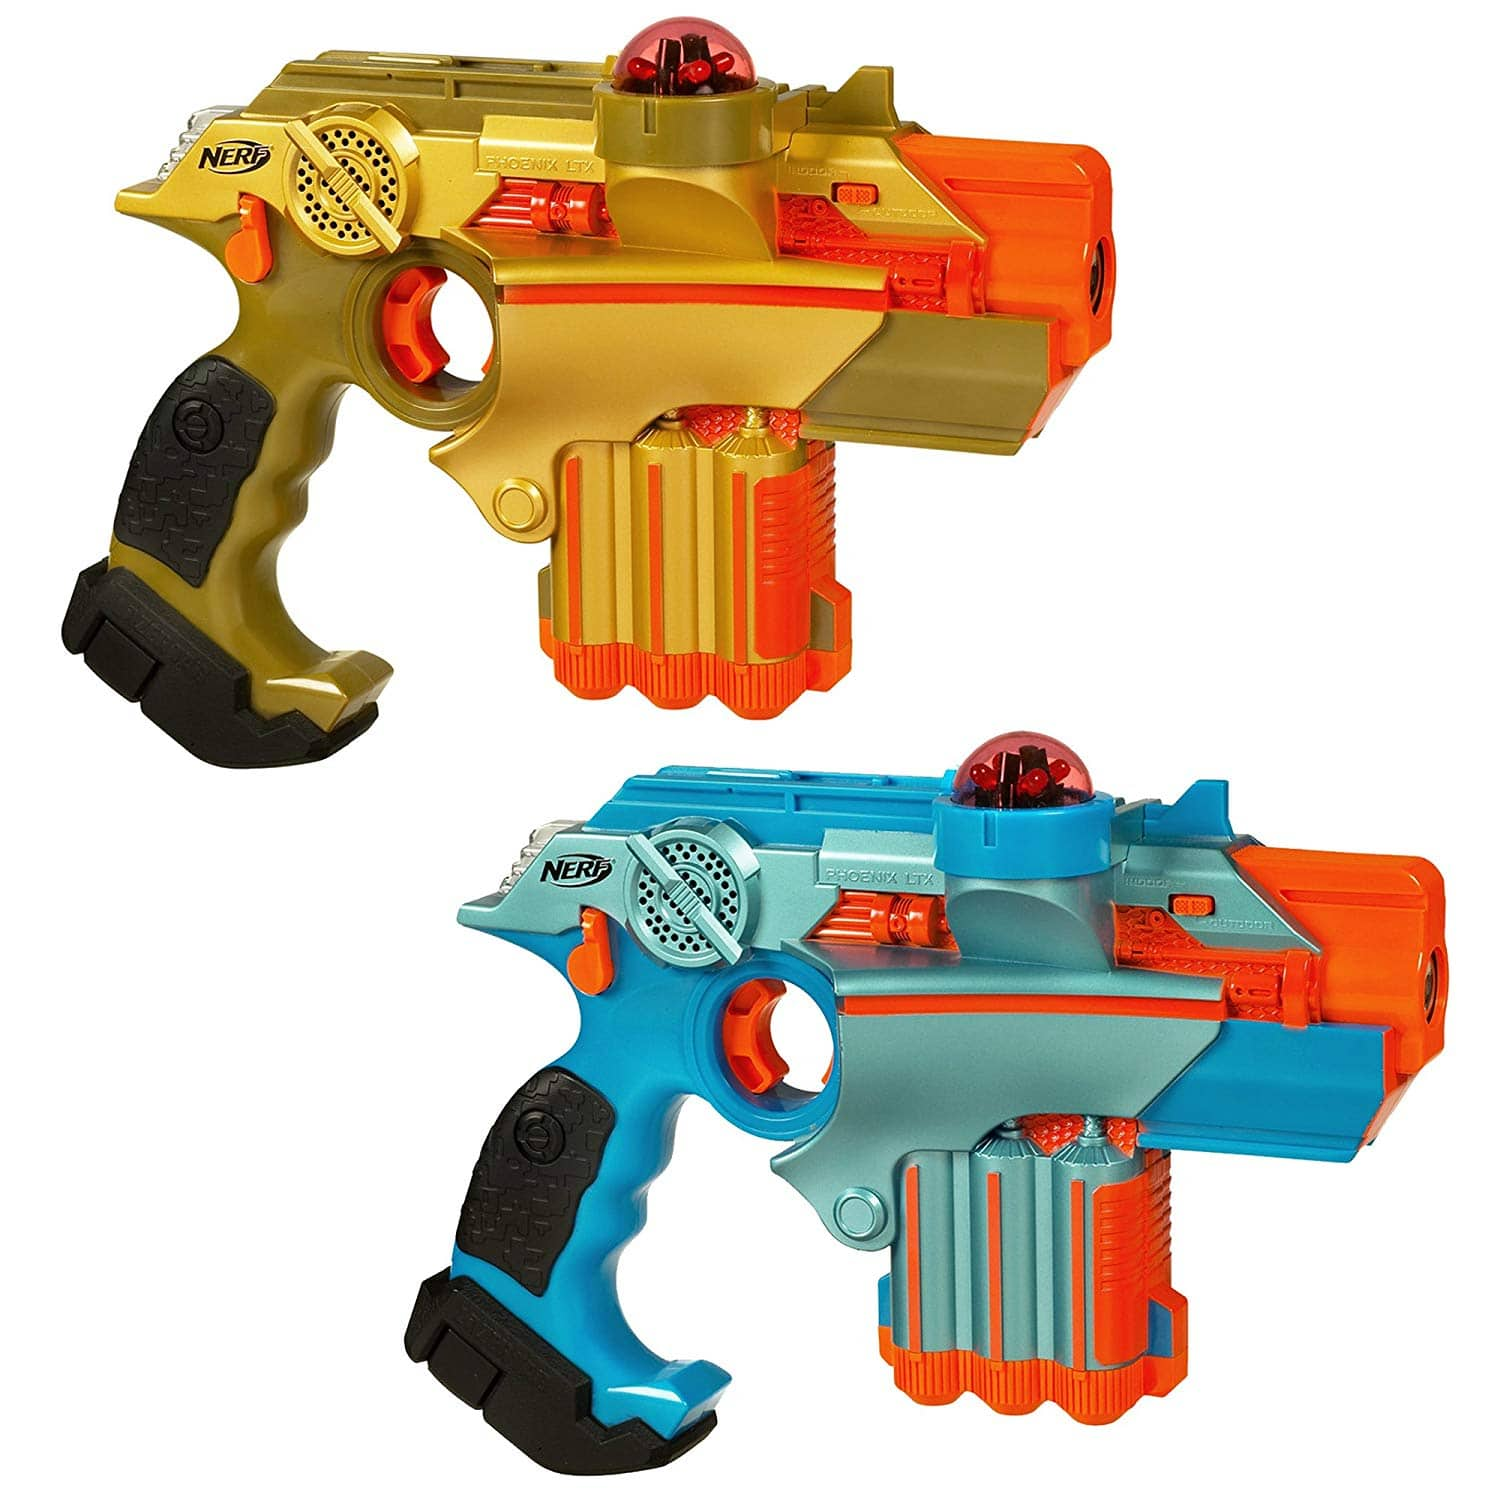 Nerf Official: Lazer Tag Phoenix LTX Tagger 2-pack $40 + Free Shipping